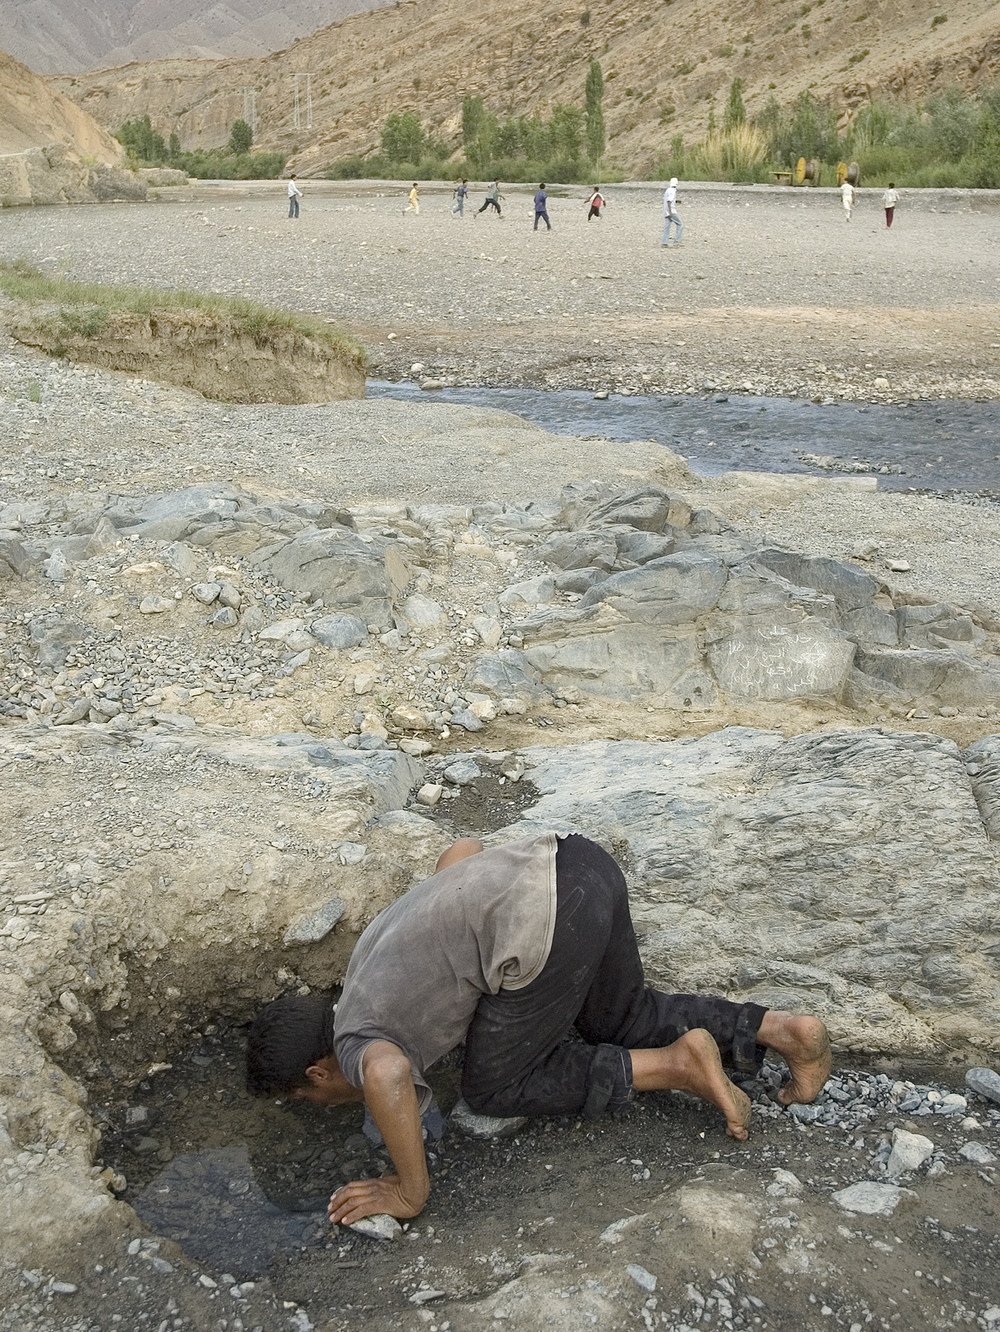 Mohammed drinking from an underground water source on the dry river.